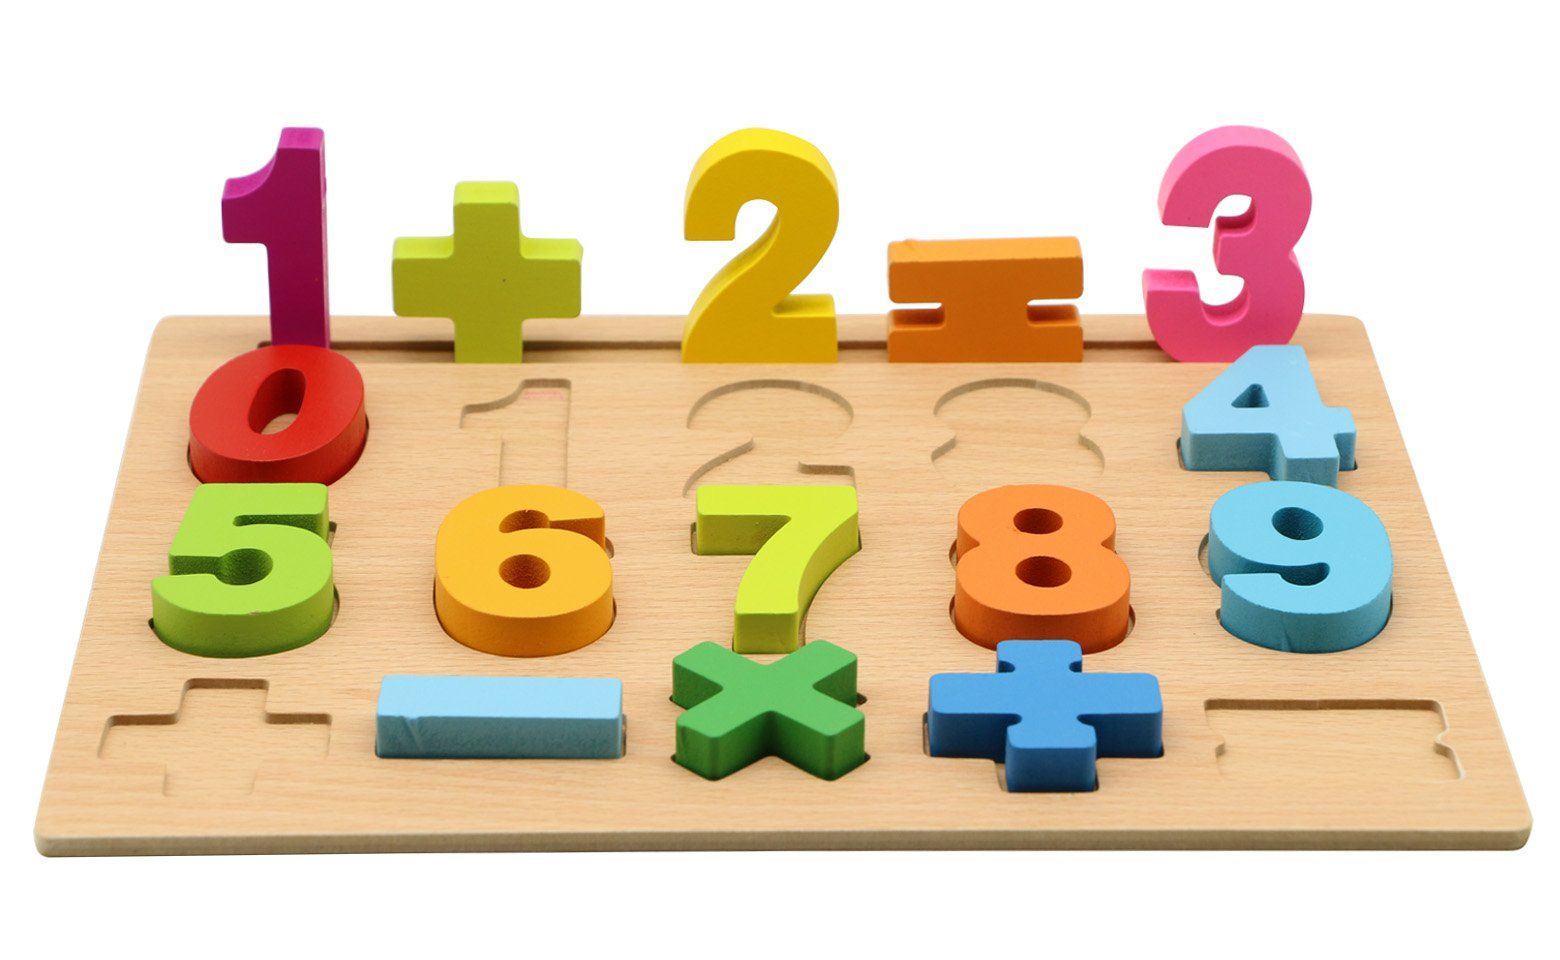 Motrent Stand Up Wooden Number Puzzle Board Toy For Kids With 10